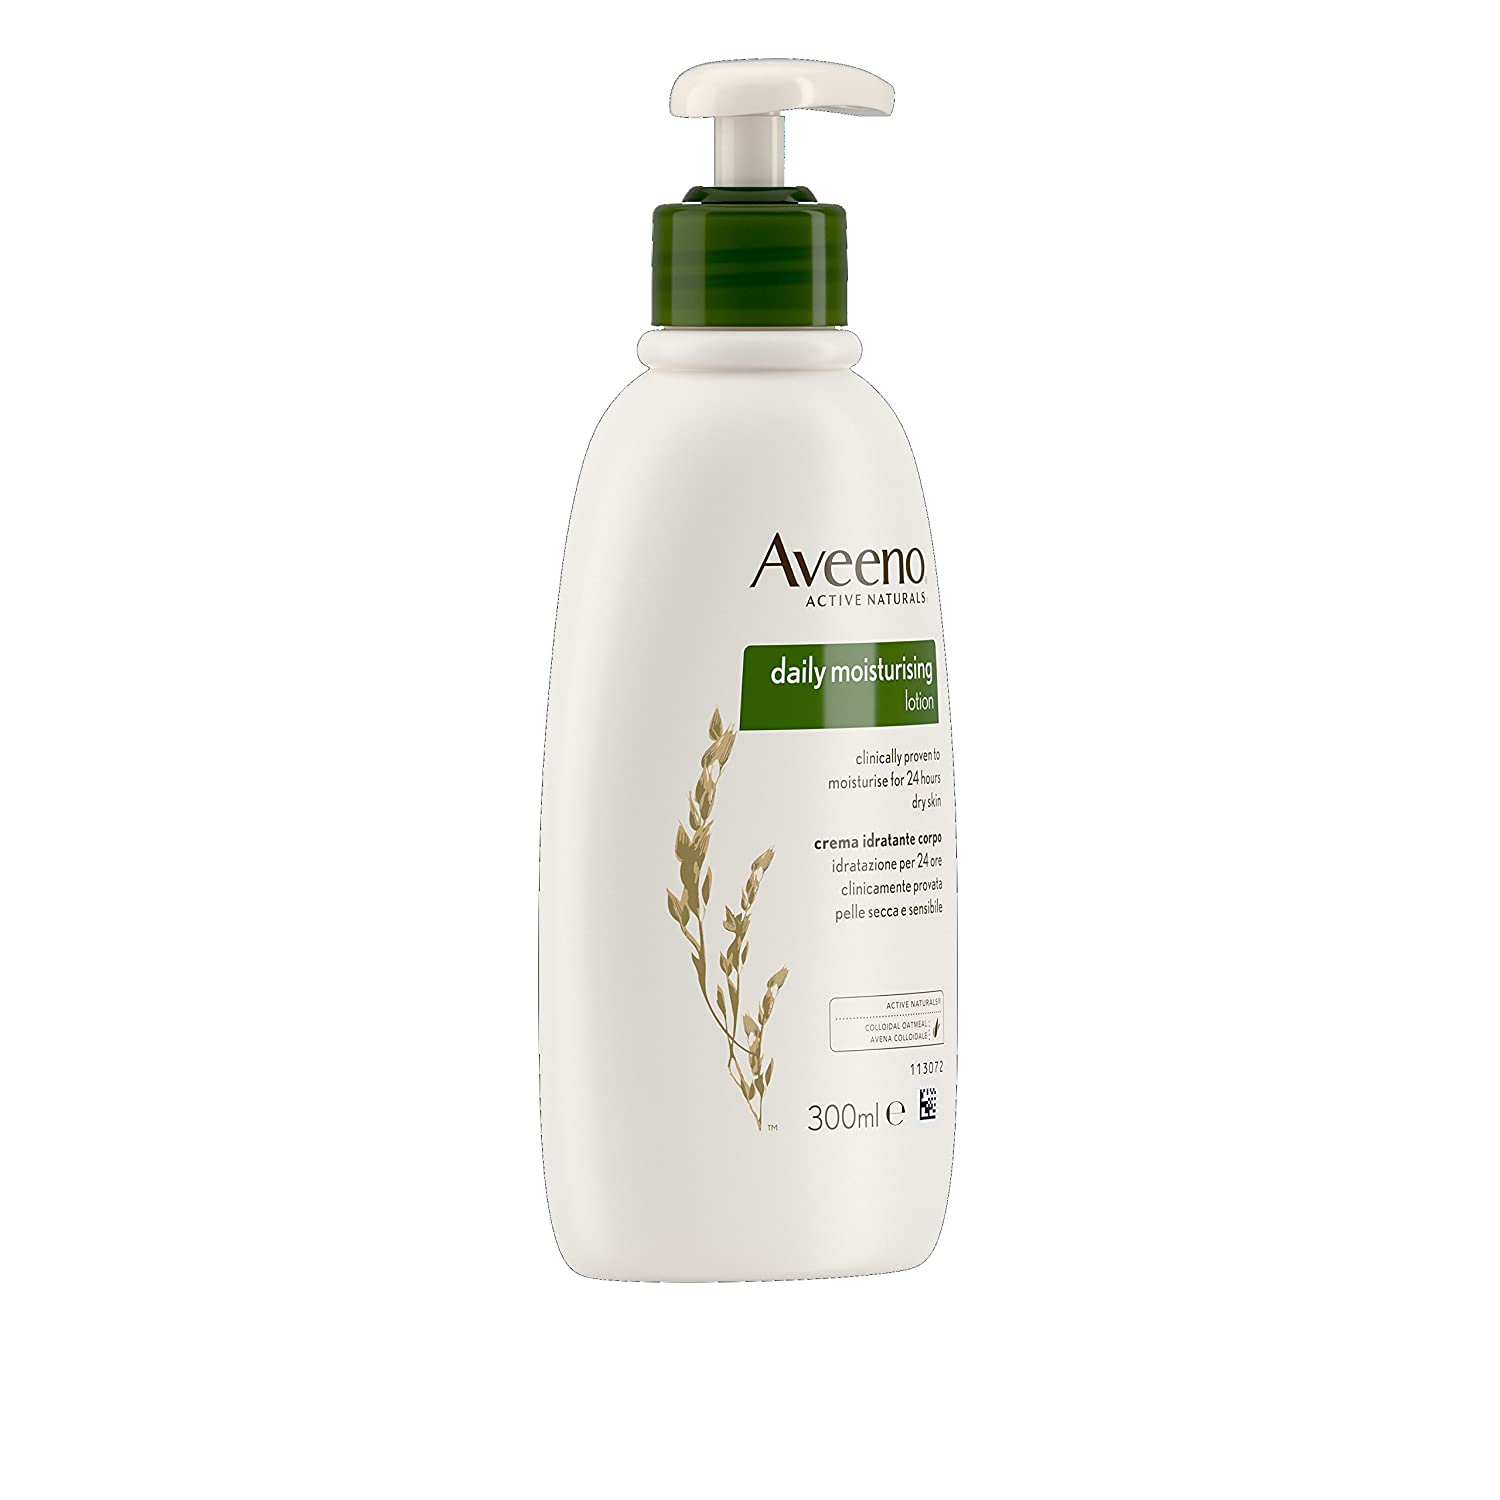 Aveeno Daily Moisturising Lotion 300 ml [Packaging May Vary] Amazon Beauty